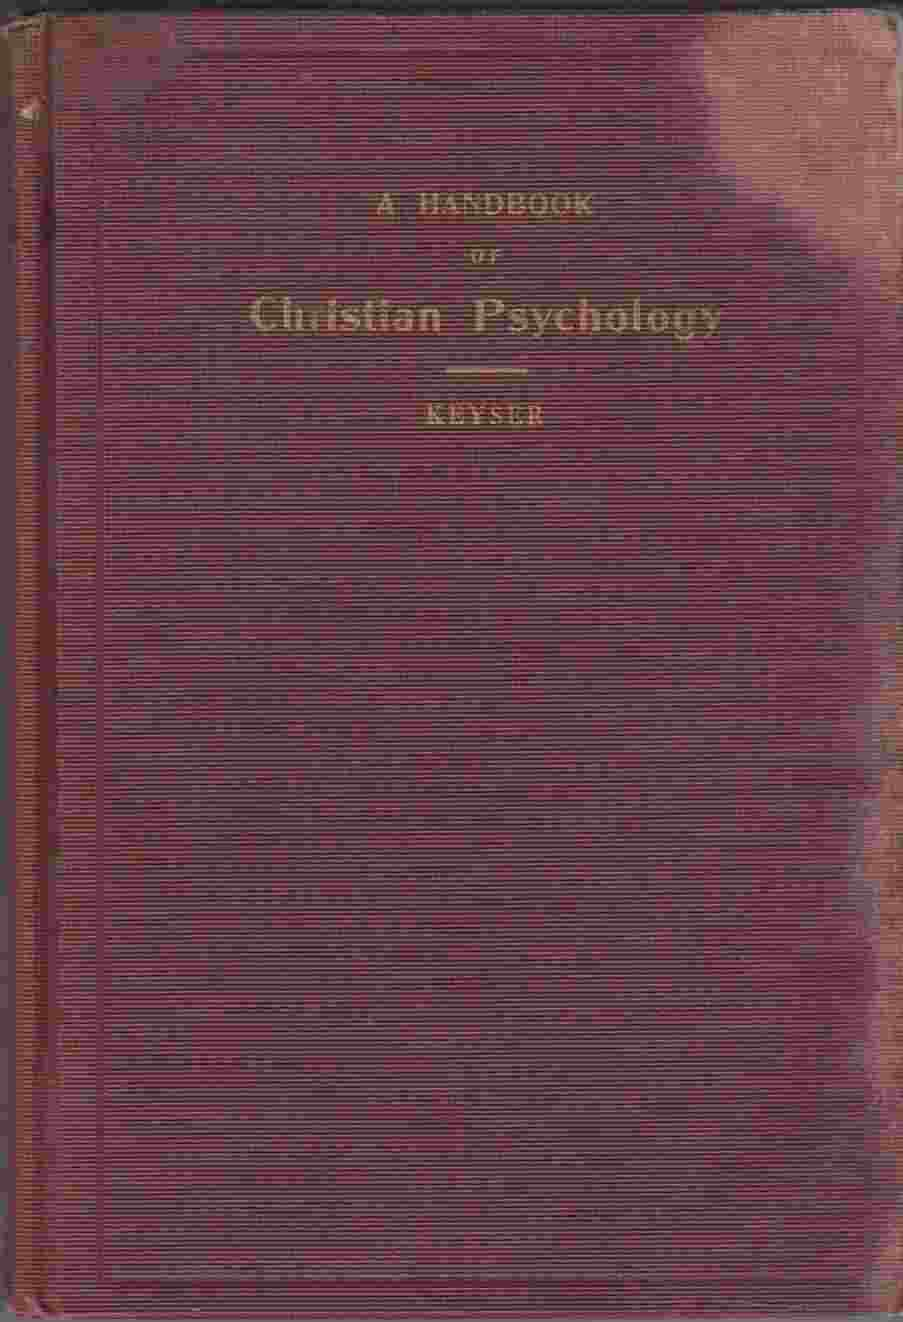 Image for A Handbook of Christian Psychology